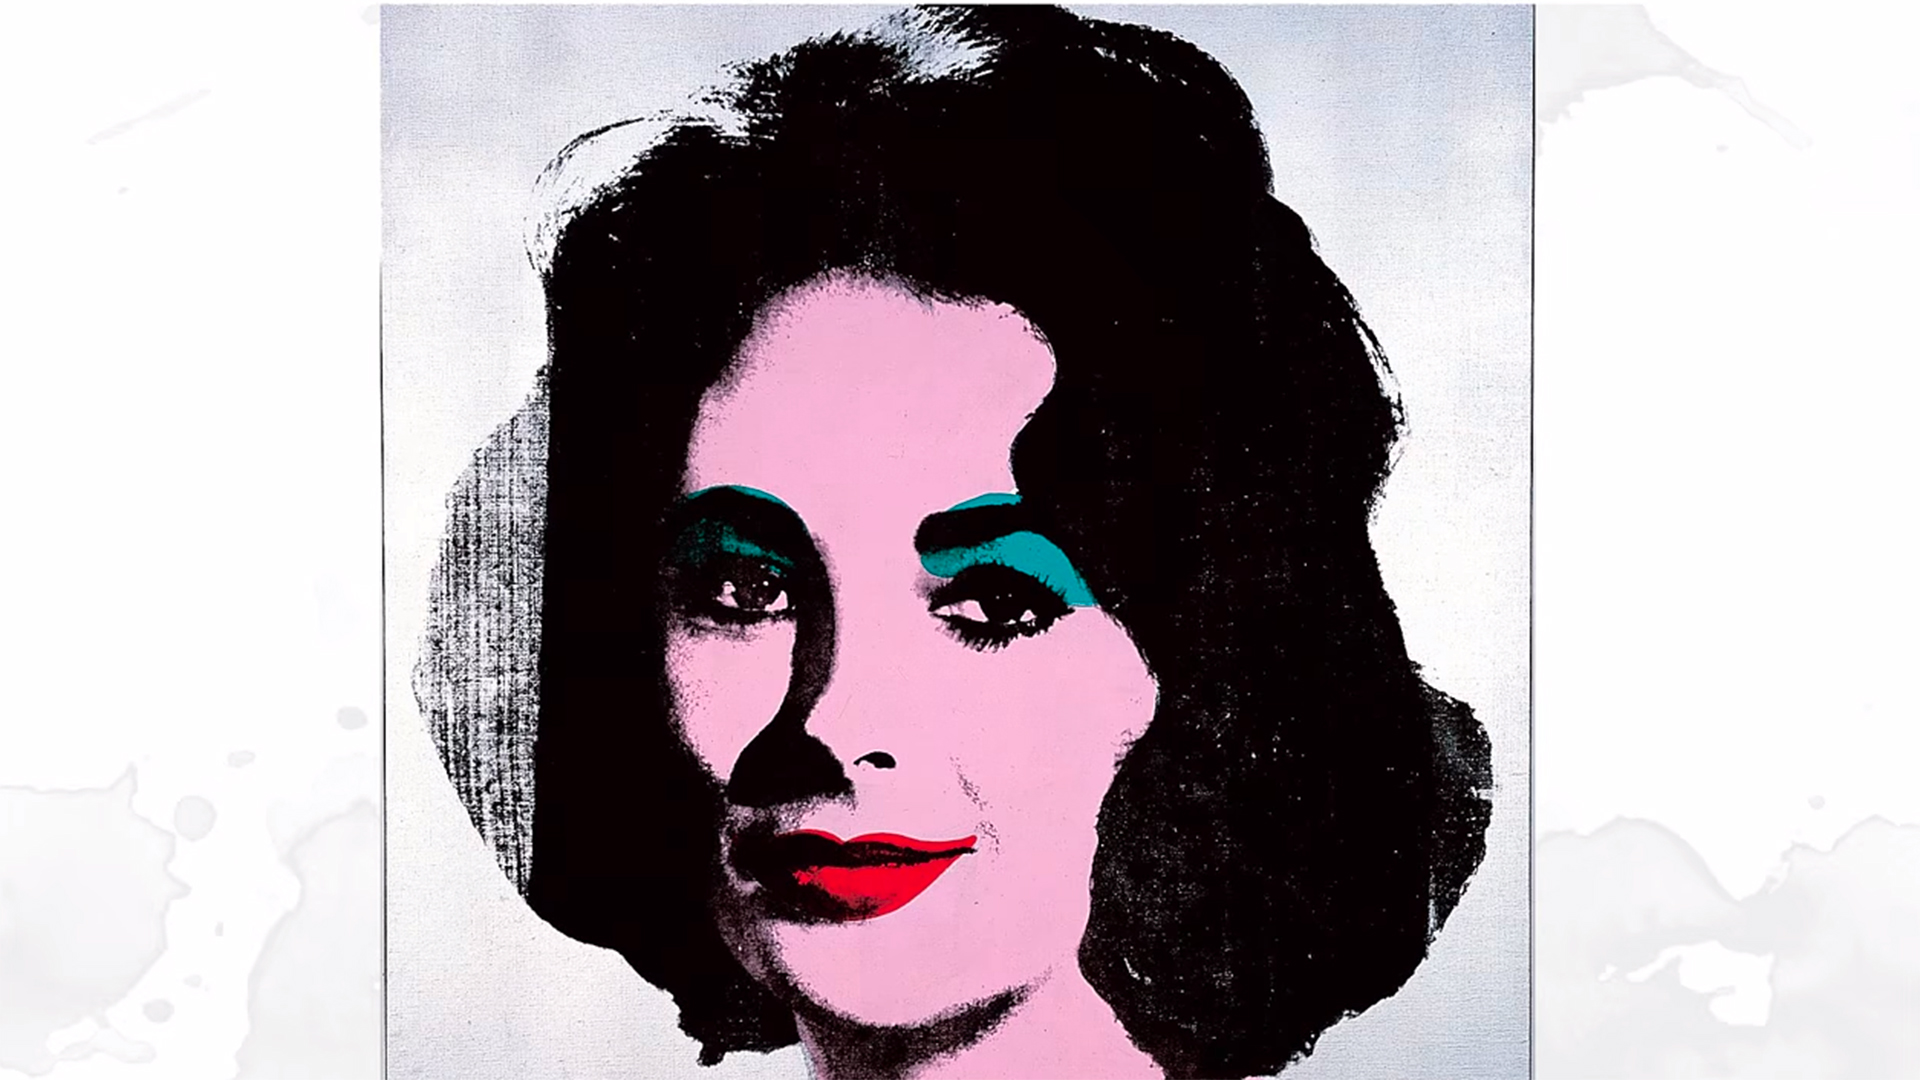 The Case For Andy Warhol | The Art Assignment